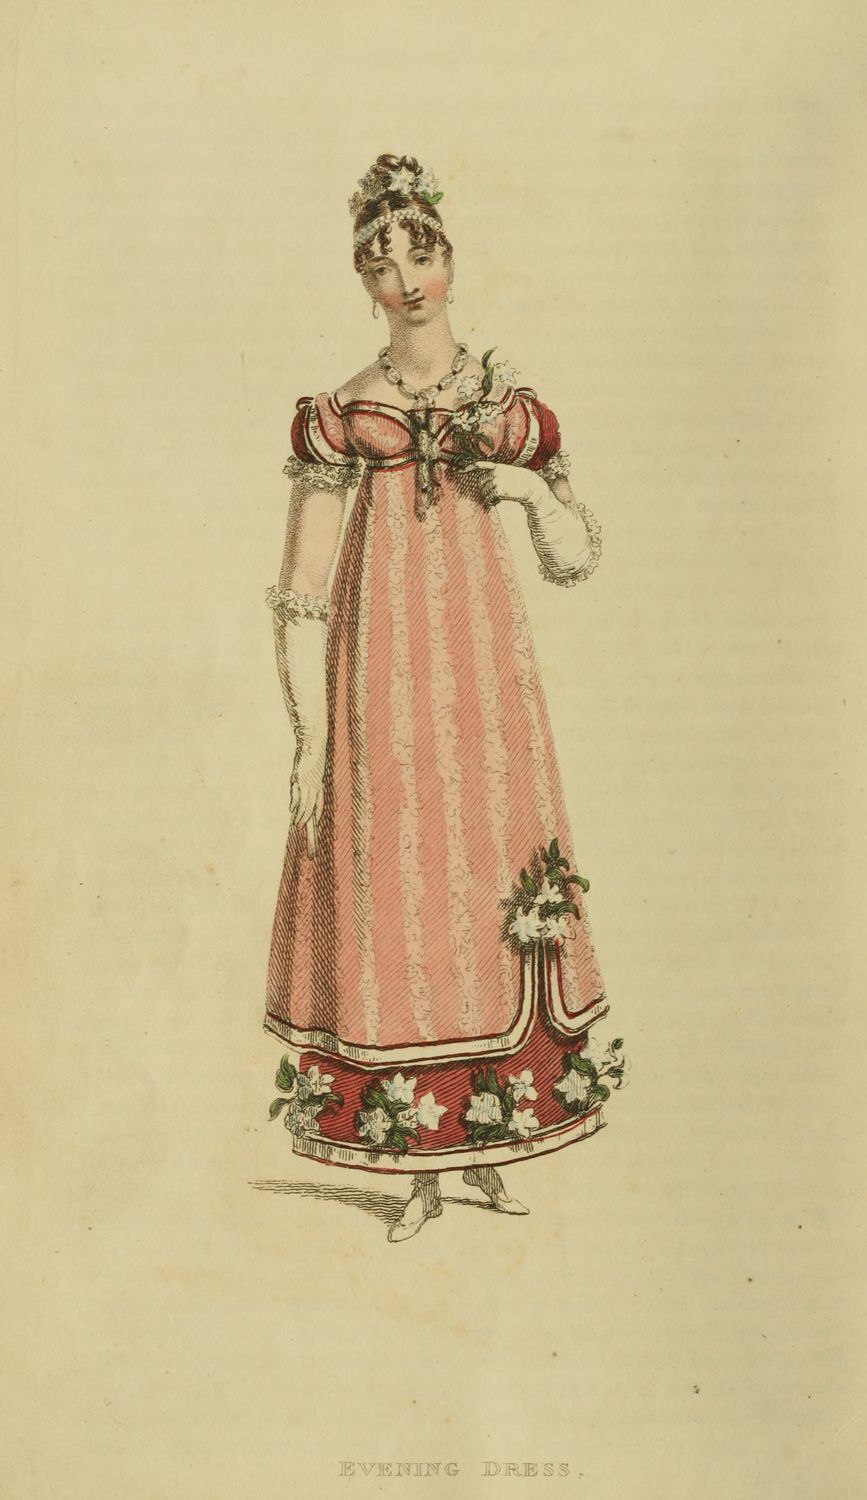 Regency fashion plate the secret dreamworld of a jane austen fan - Find This Pin And More On Regency 1809 1829 By Mulberrysang